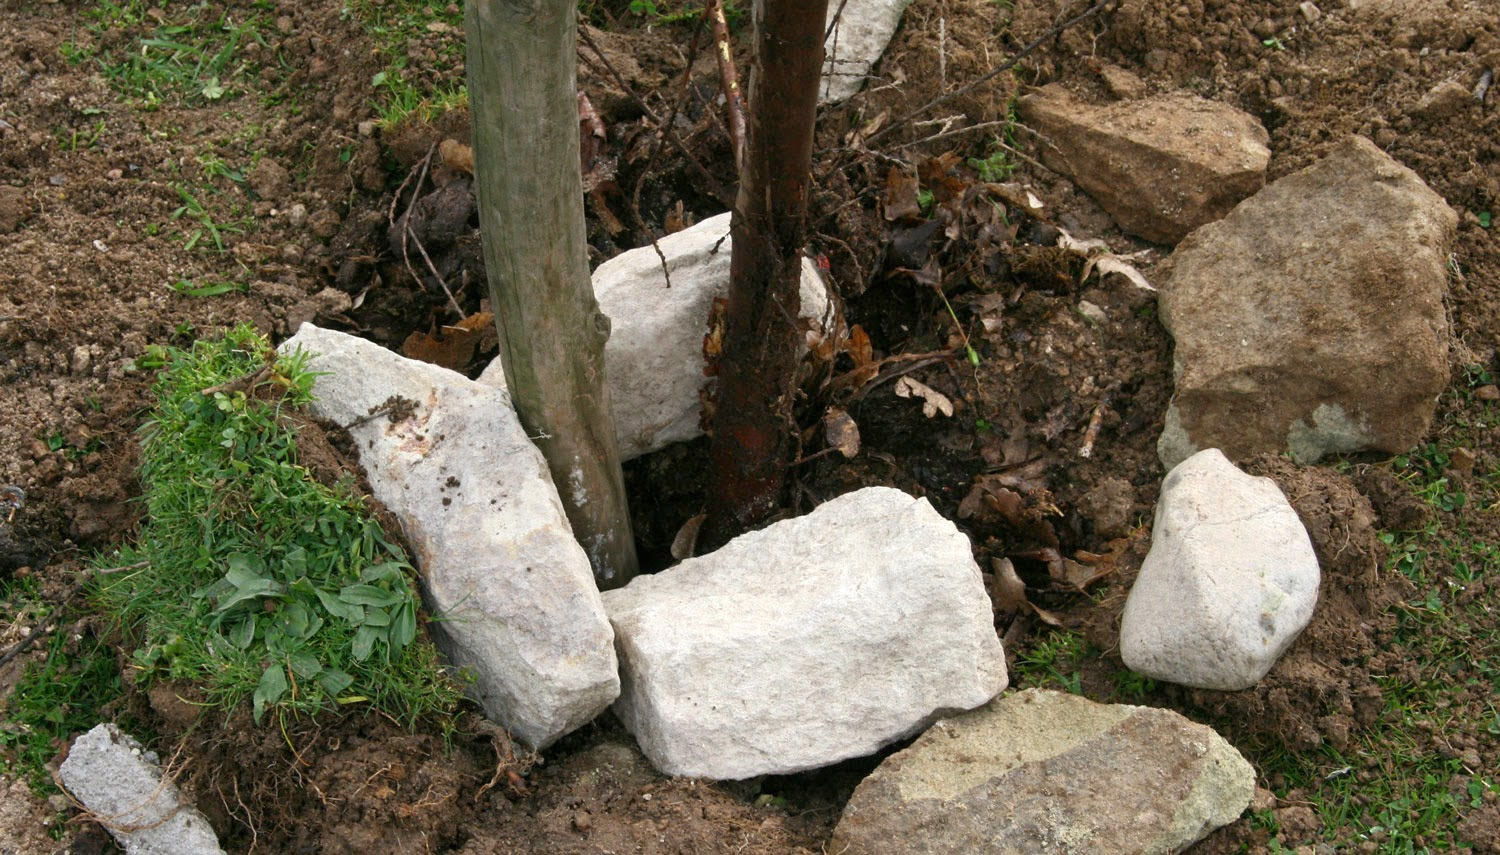 The base of the tree with stake